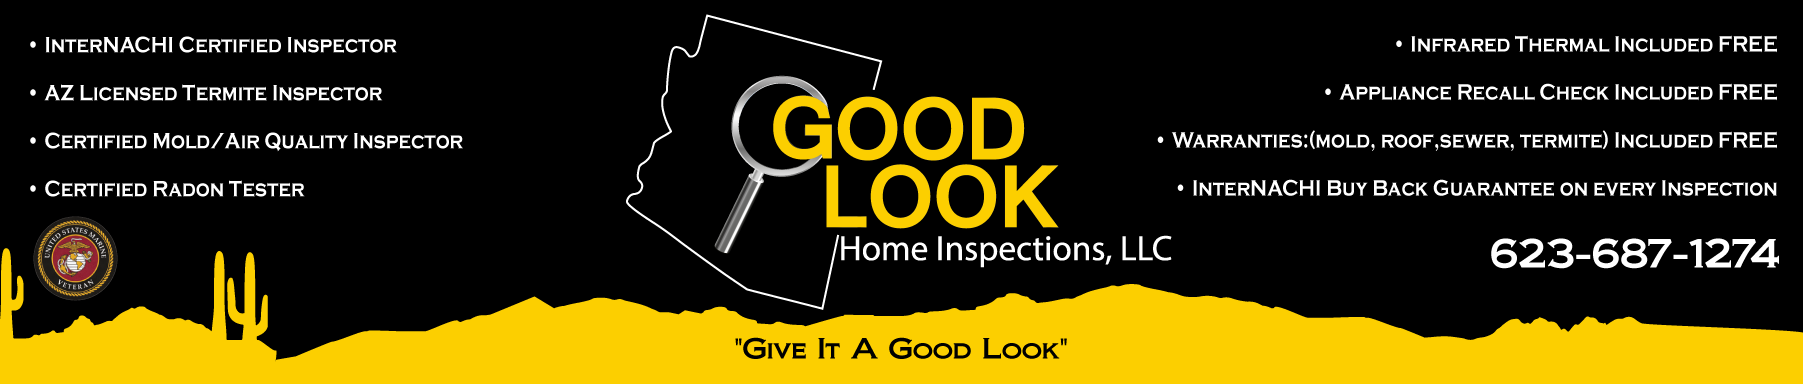 Good Look Home Inspections Llc Give It A Good Look With Good Look